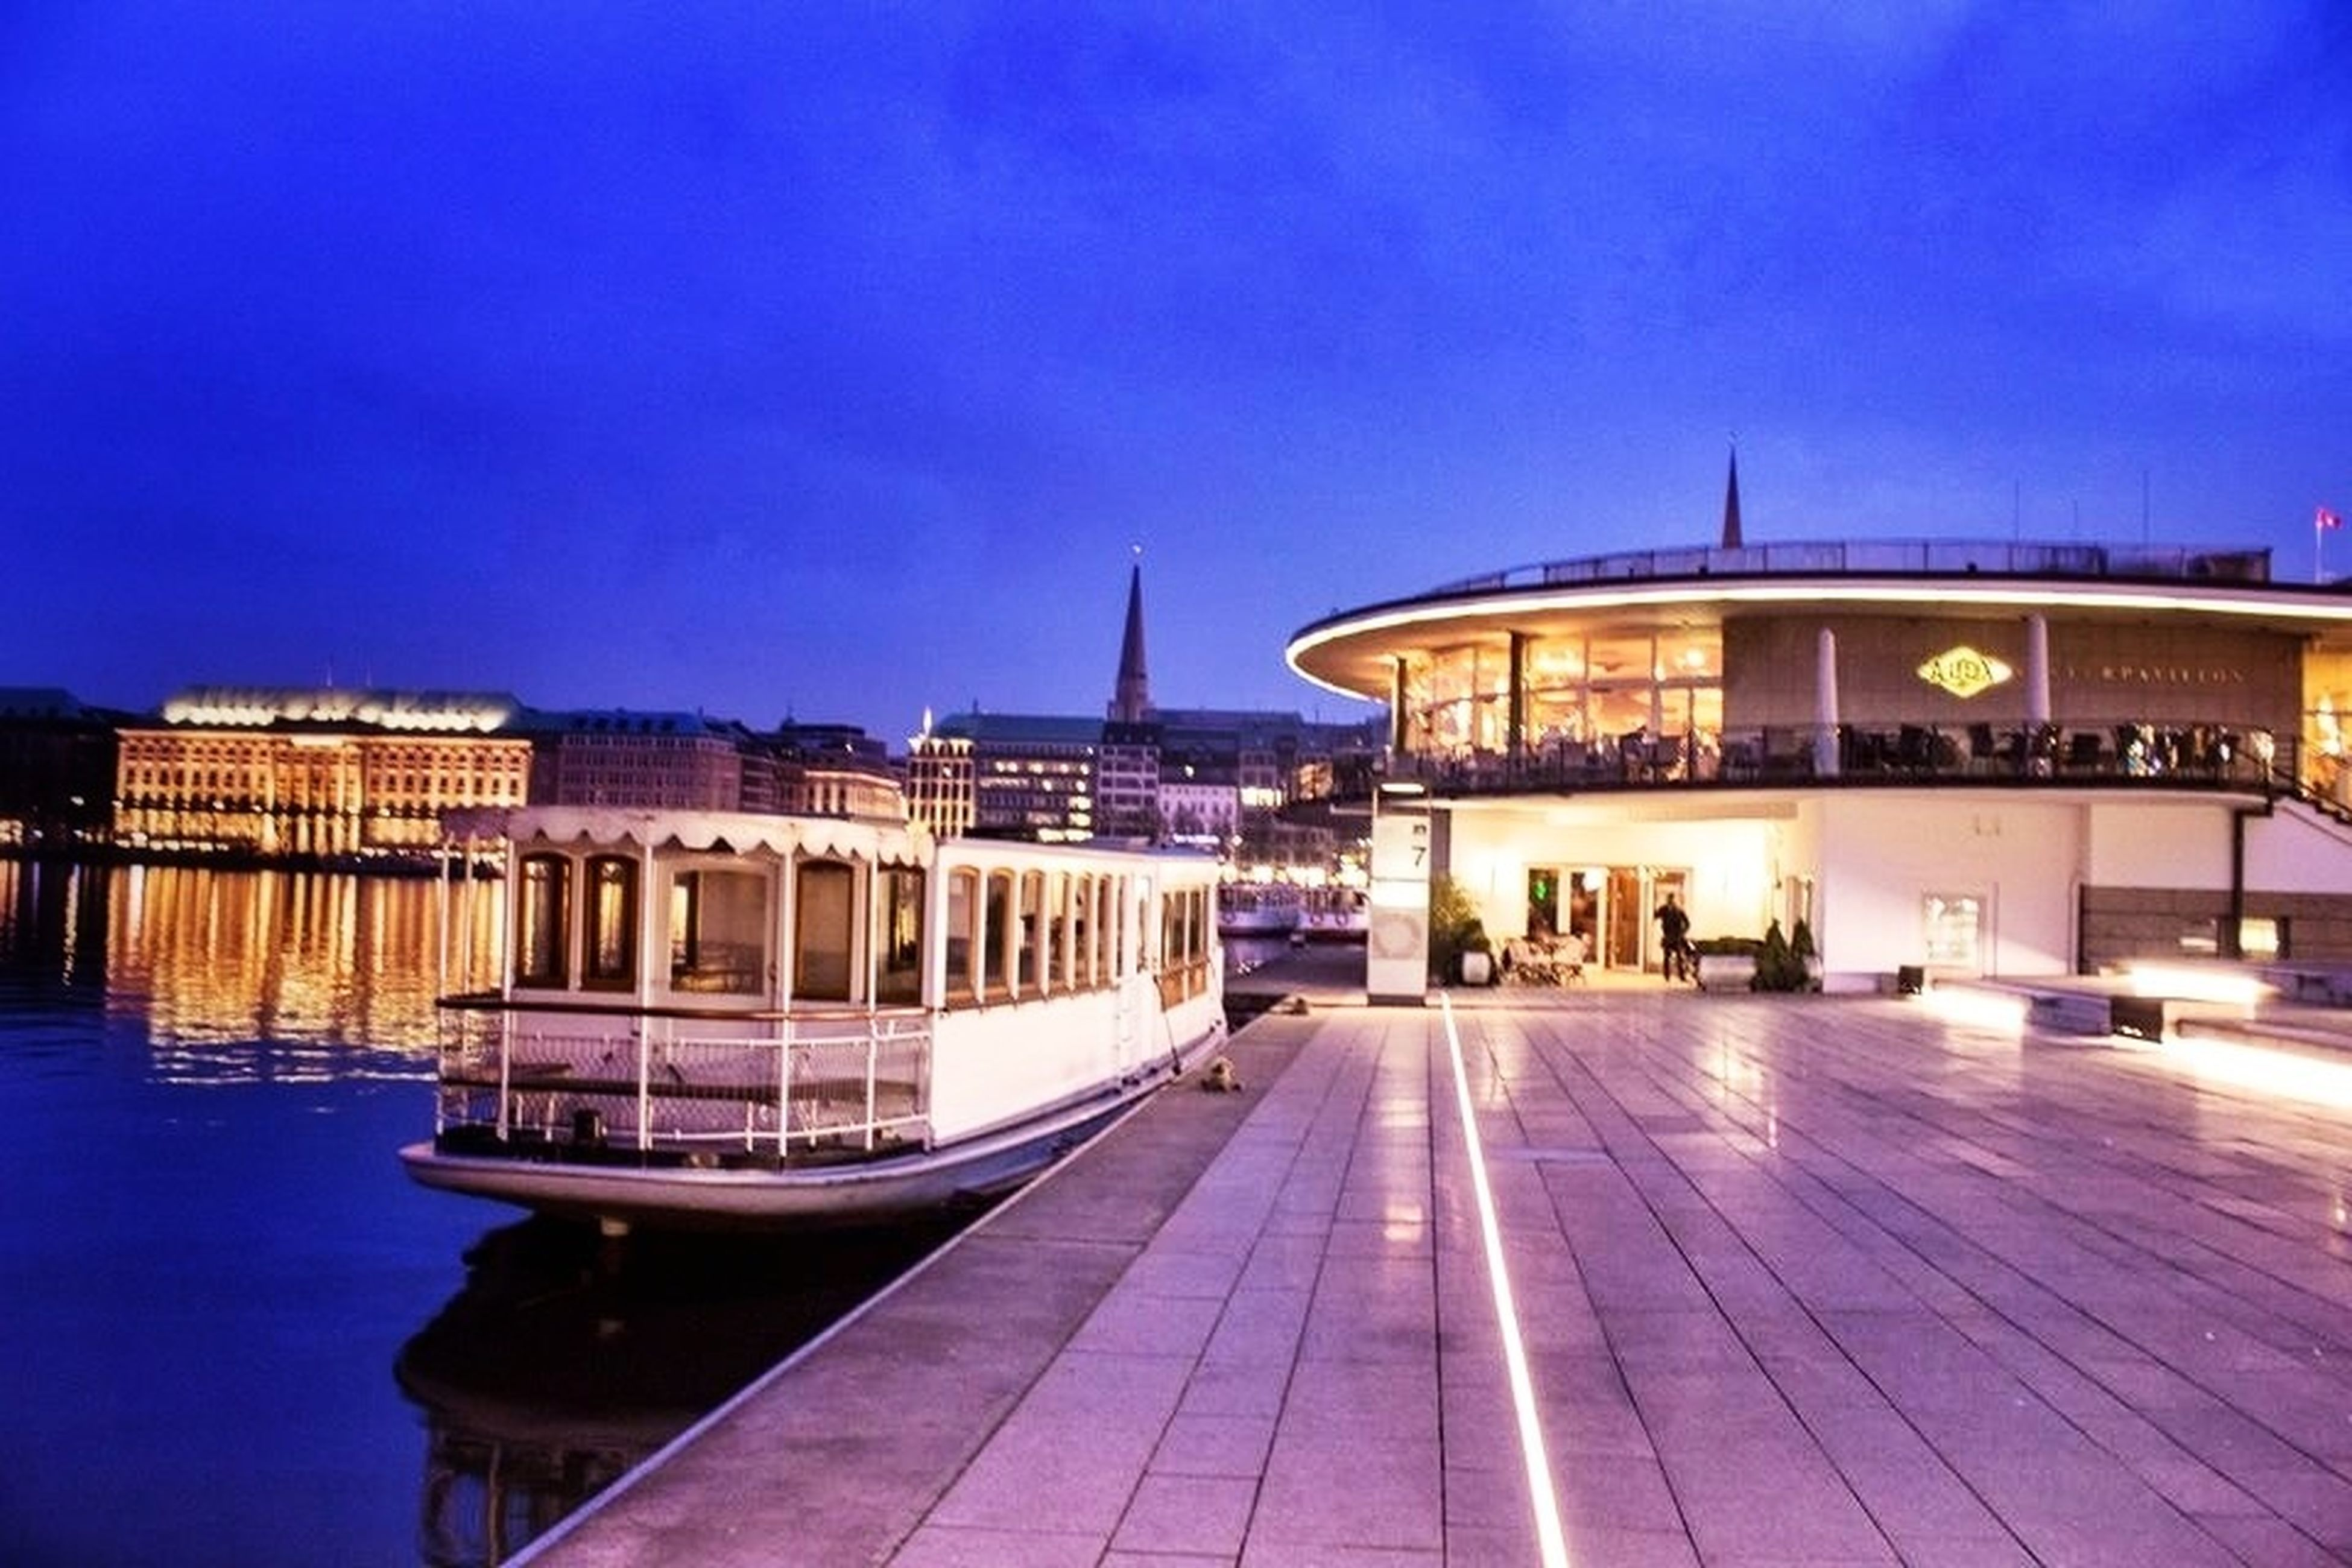 architecture, built structure, blue, building exterior, clear sky, illuminated, copy space, water, transportation, sky, outdoors, night, travel, city, mode of transport, incidental people, travel destinations, railing, nautical vessel, reflection